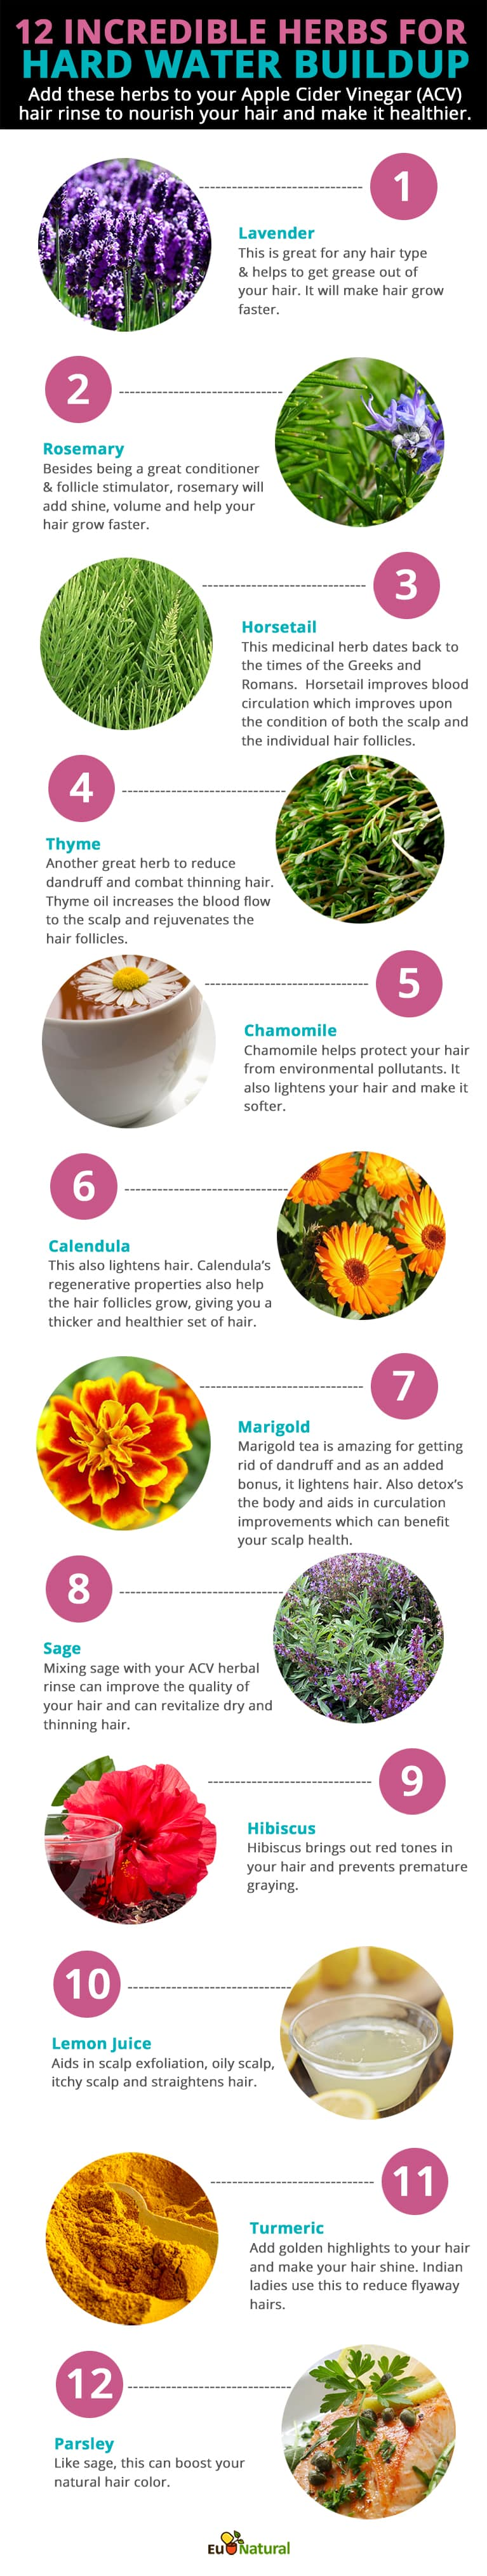 herbs-for-hard-water-buildup-infographic-final-1